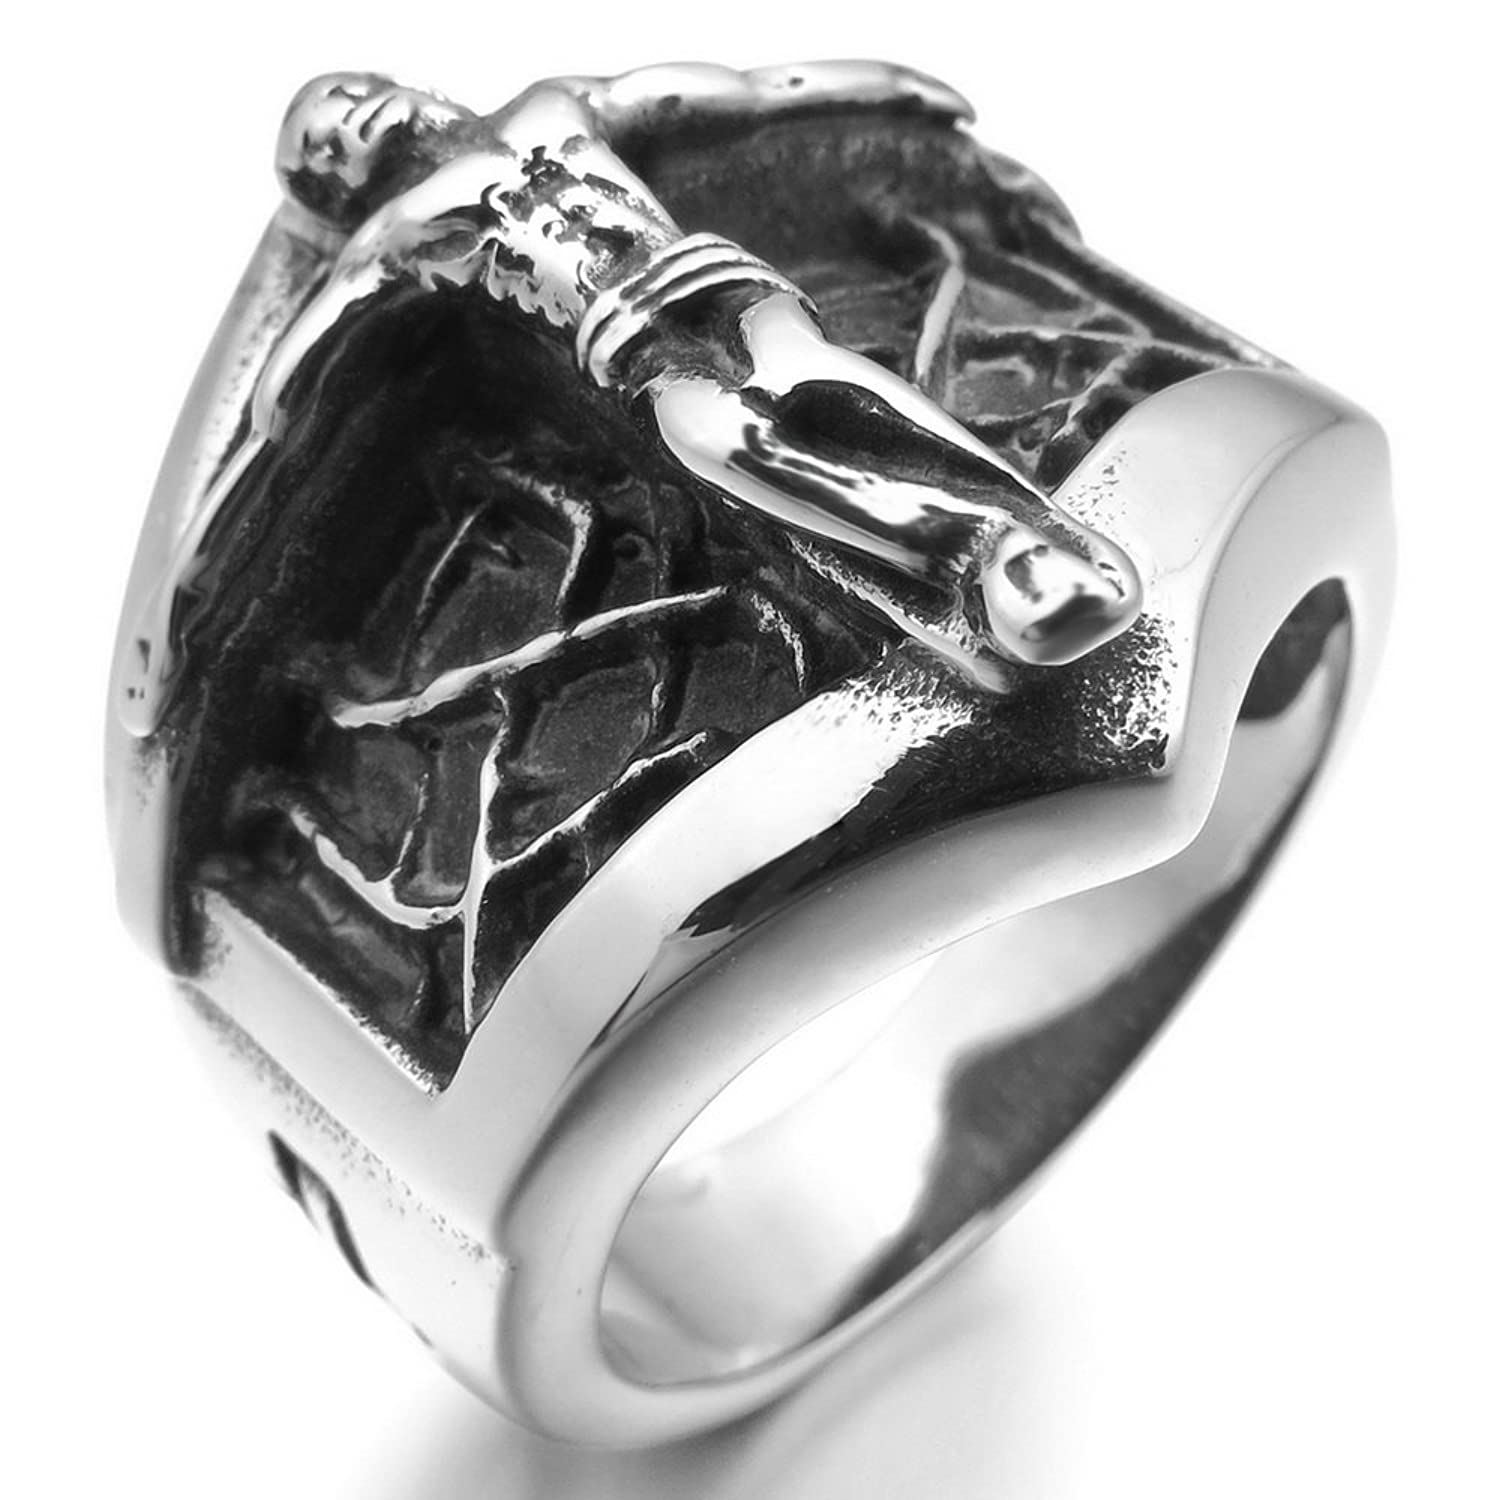 ring silver of gbrq listing lamb god hand crucifix rings pure forged coin zoom fullxfull il